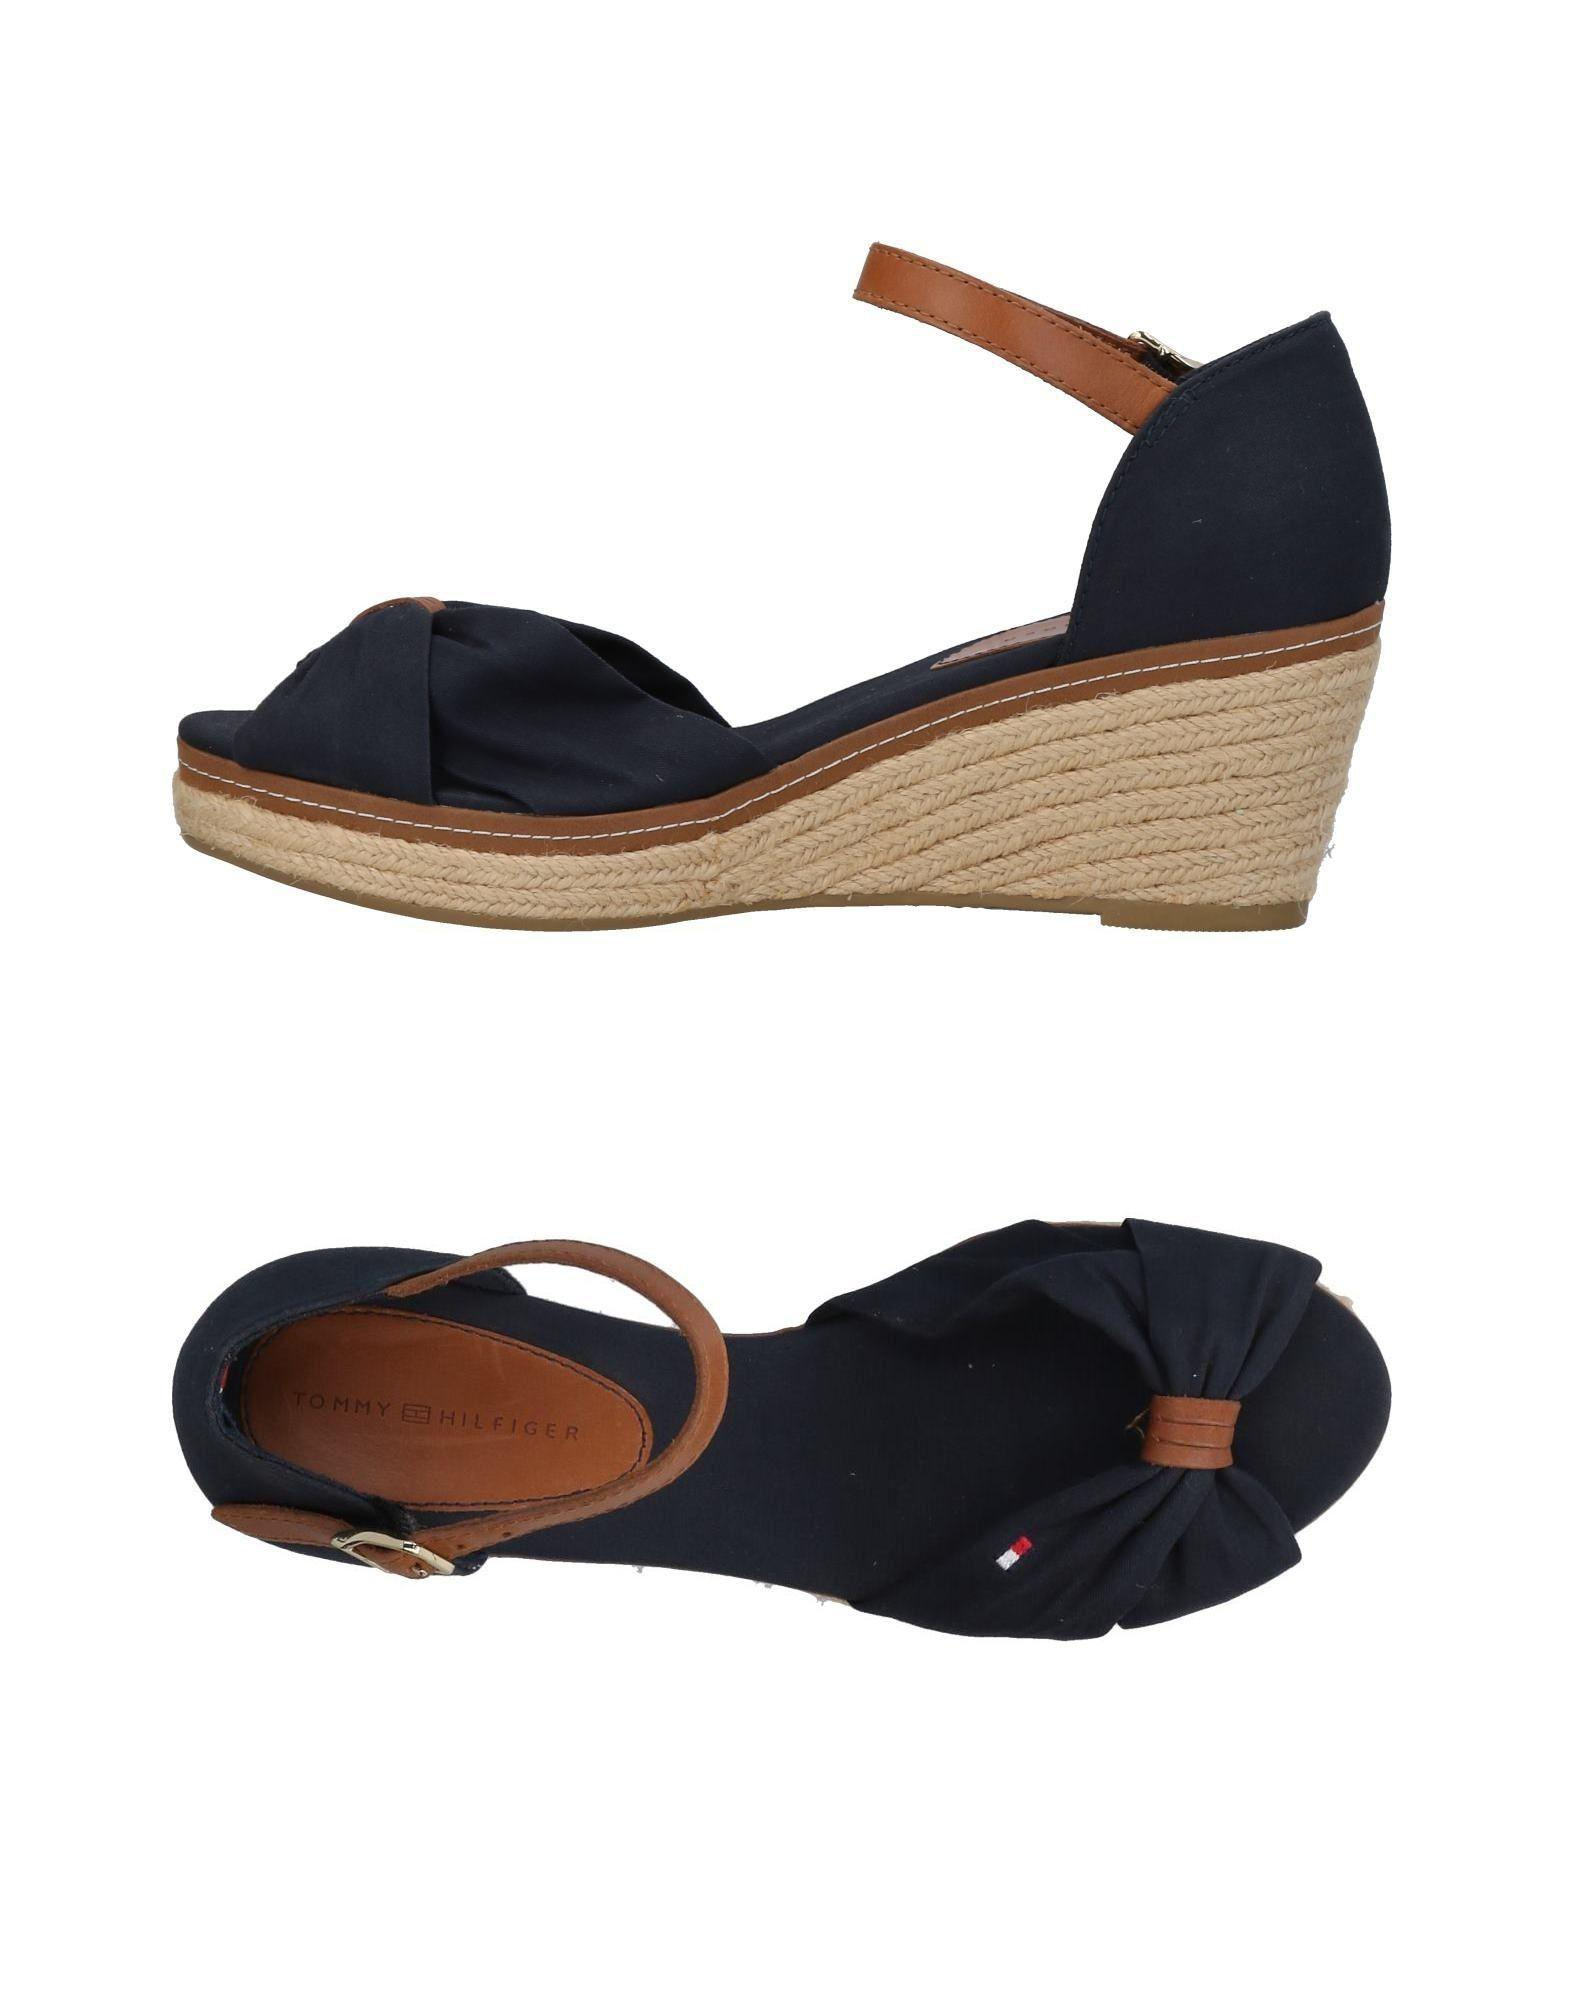 9c7ce8f8e89 Lyst - Tommy Hilfiger Sandals in Blue